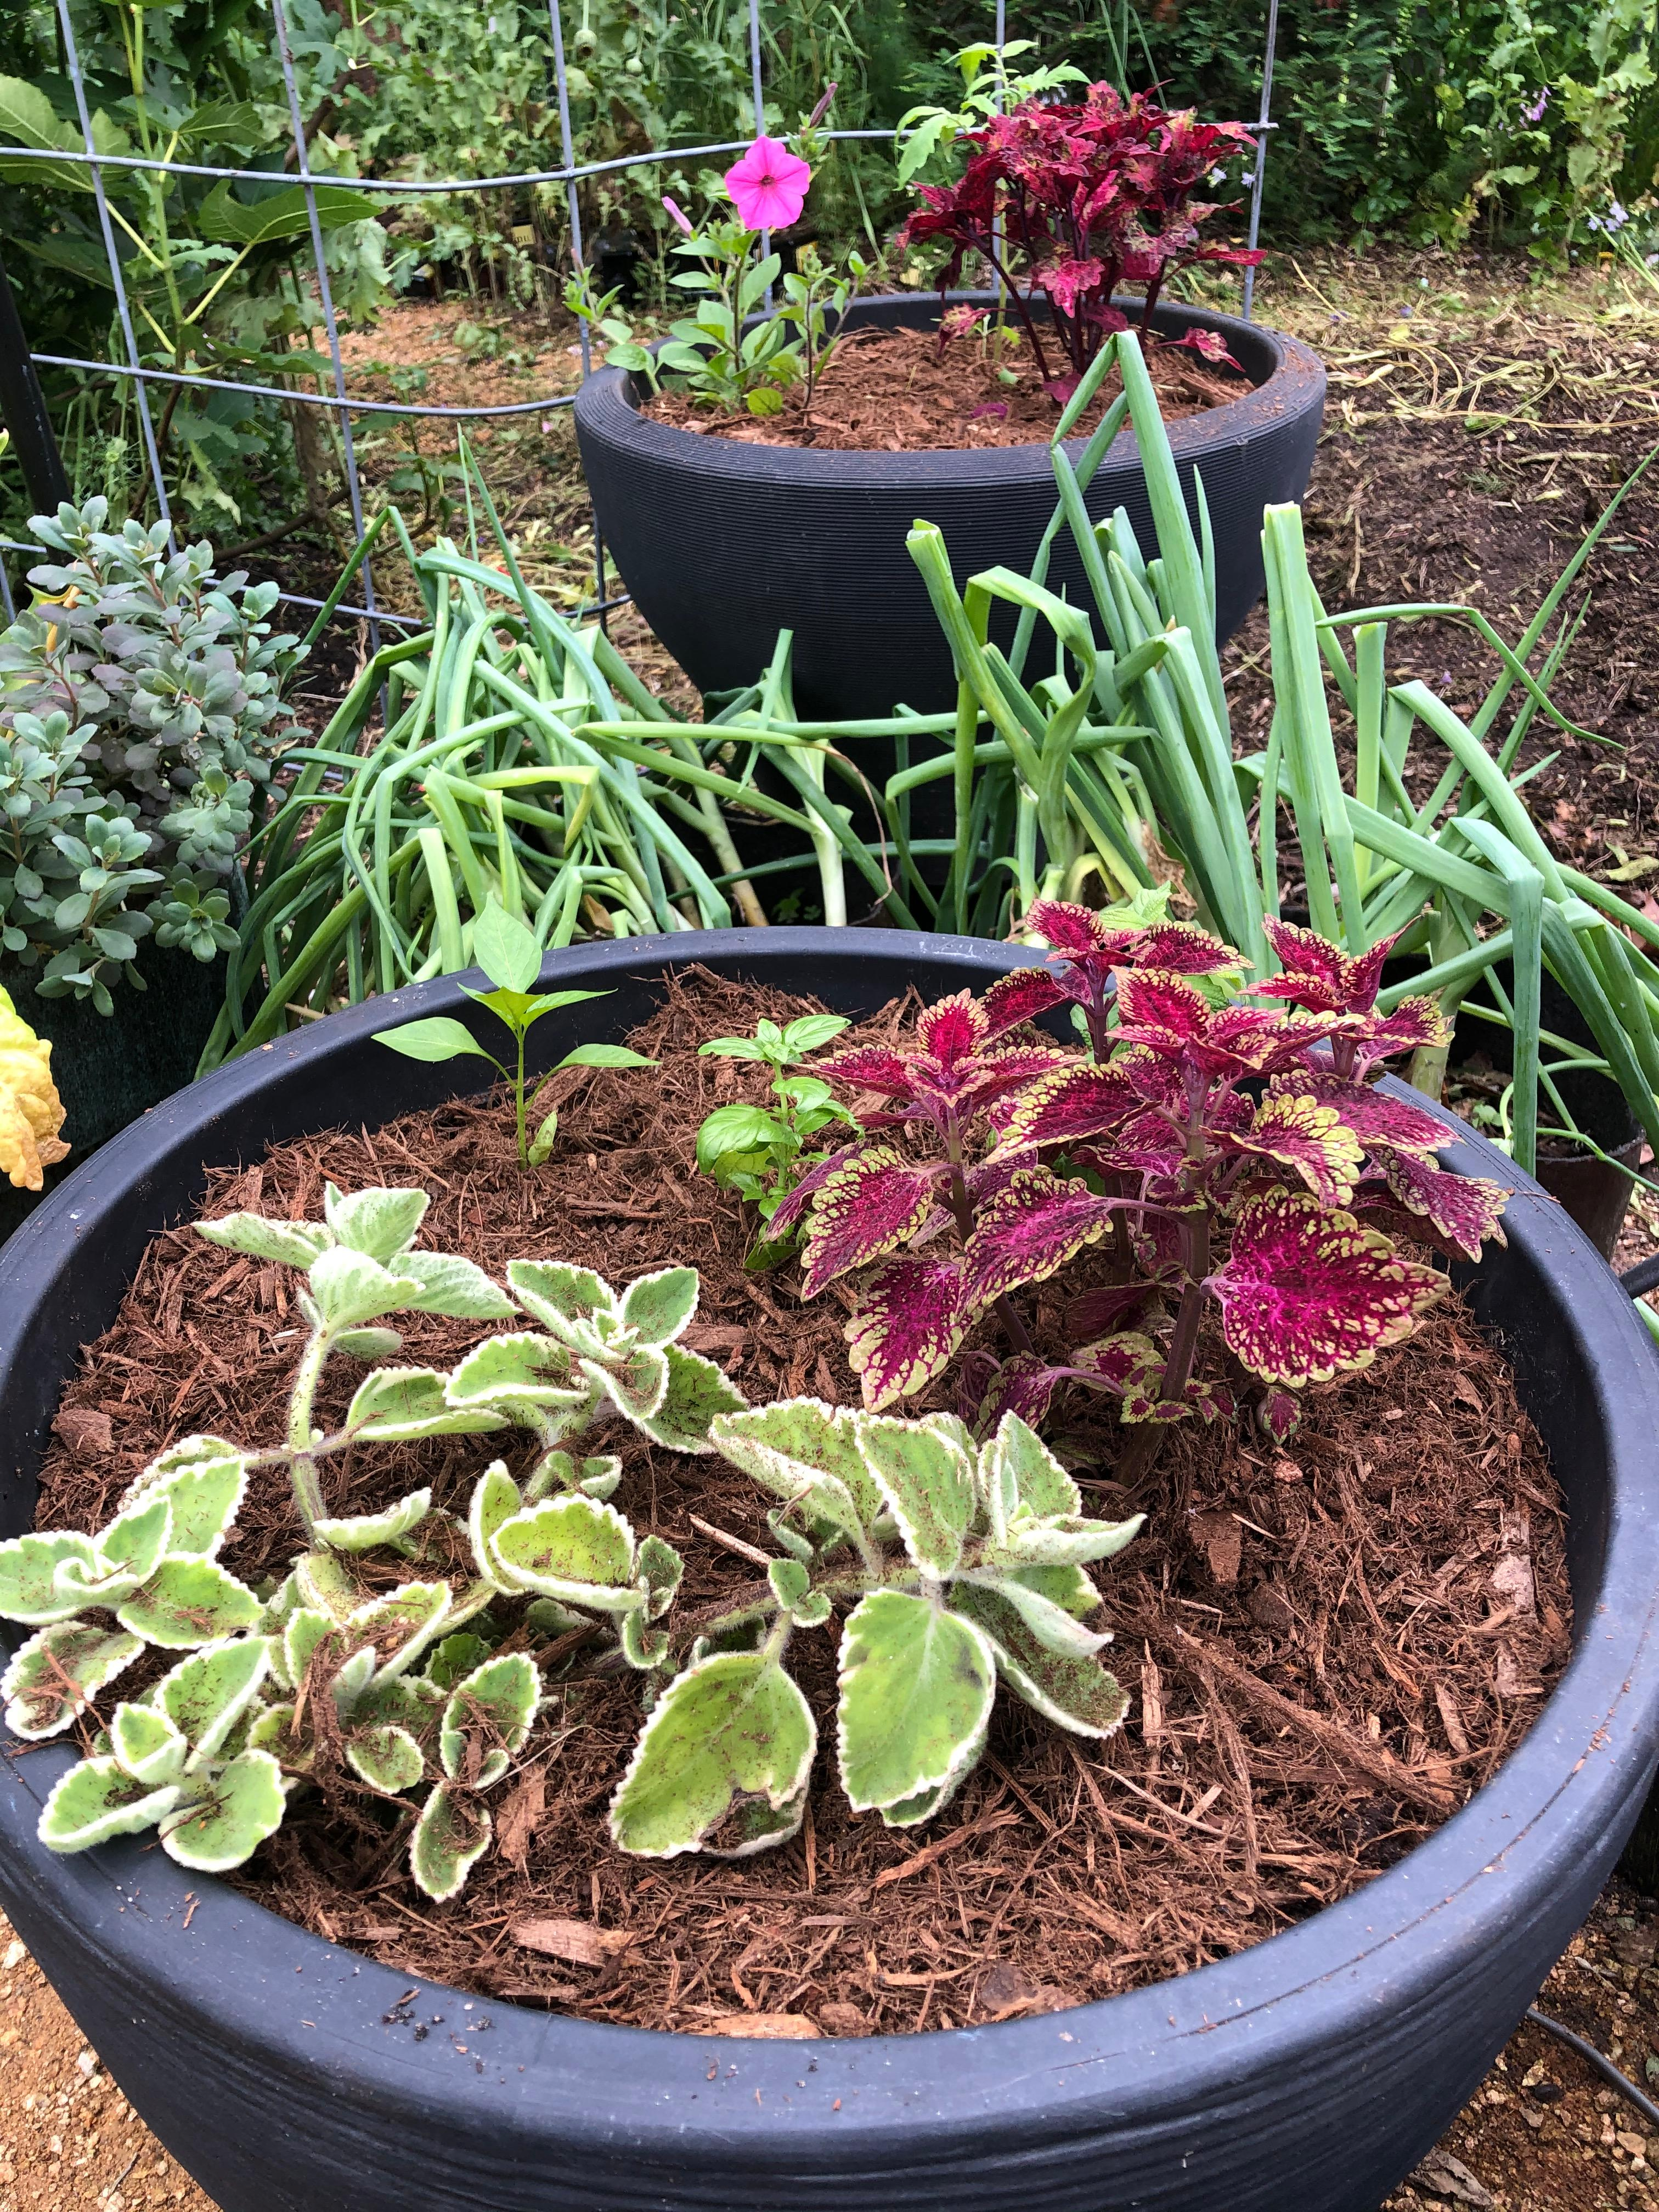 Container filled with Soil3 and mulch around the plants to conserve water